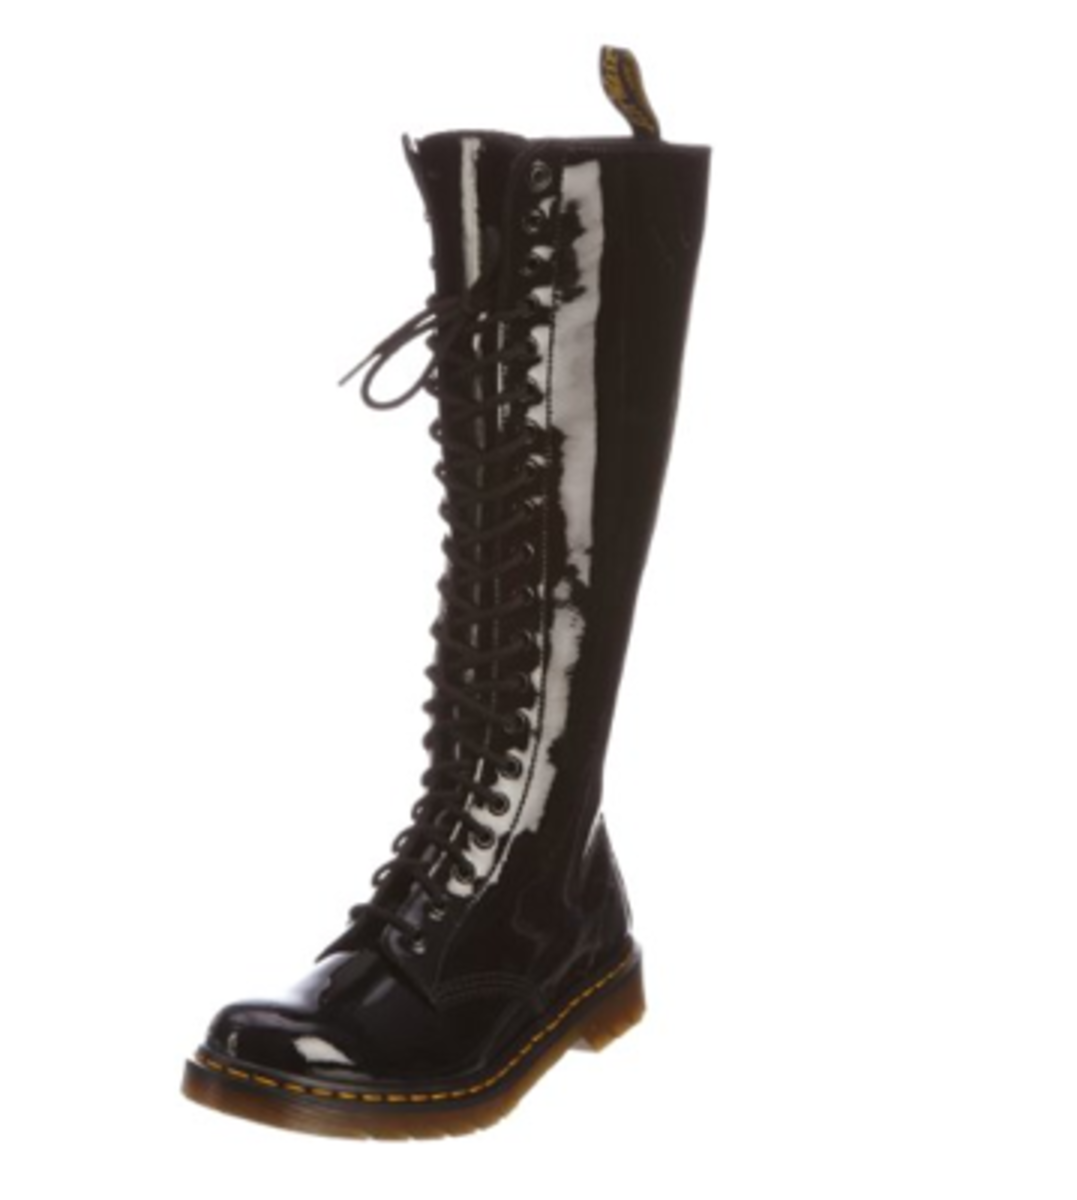 Dr. Marten's Women's 1B60 20-Eye Boot, Black - $199.99 on Amazon